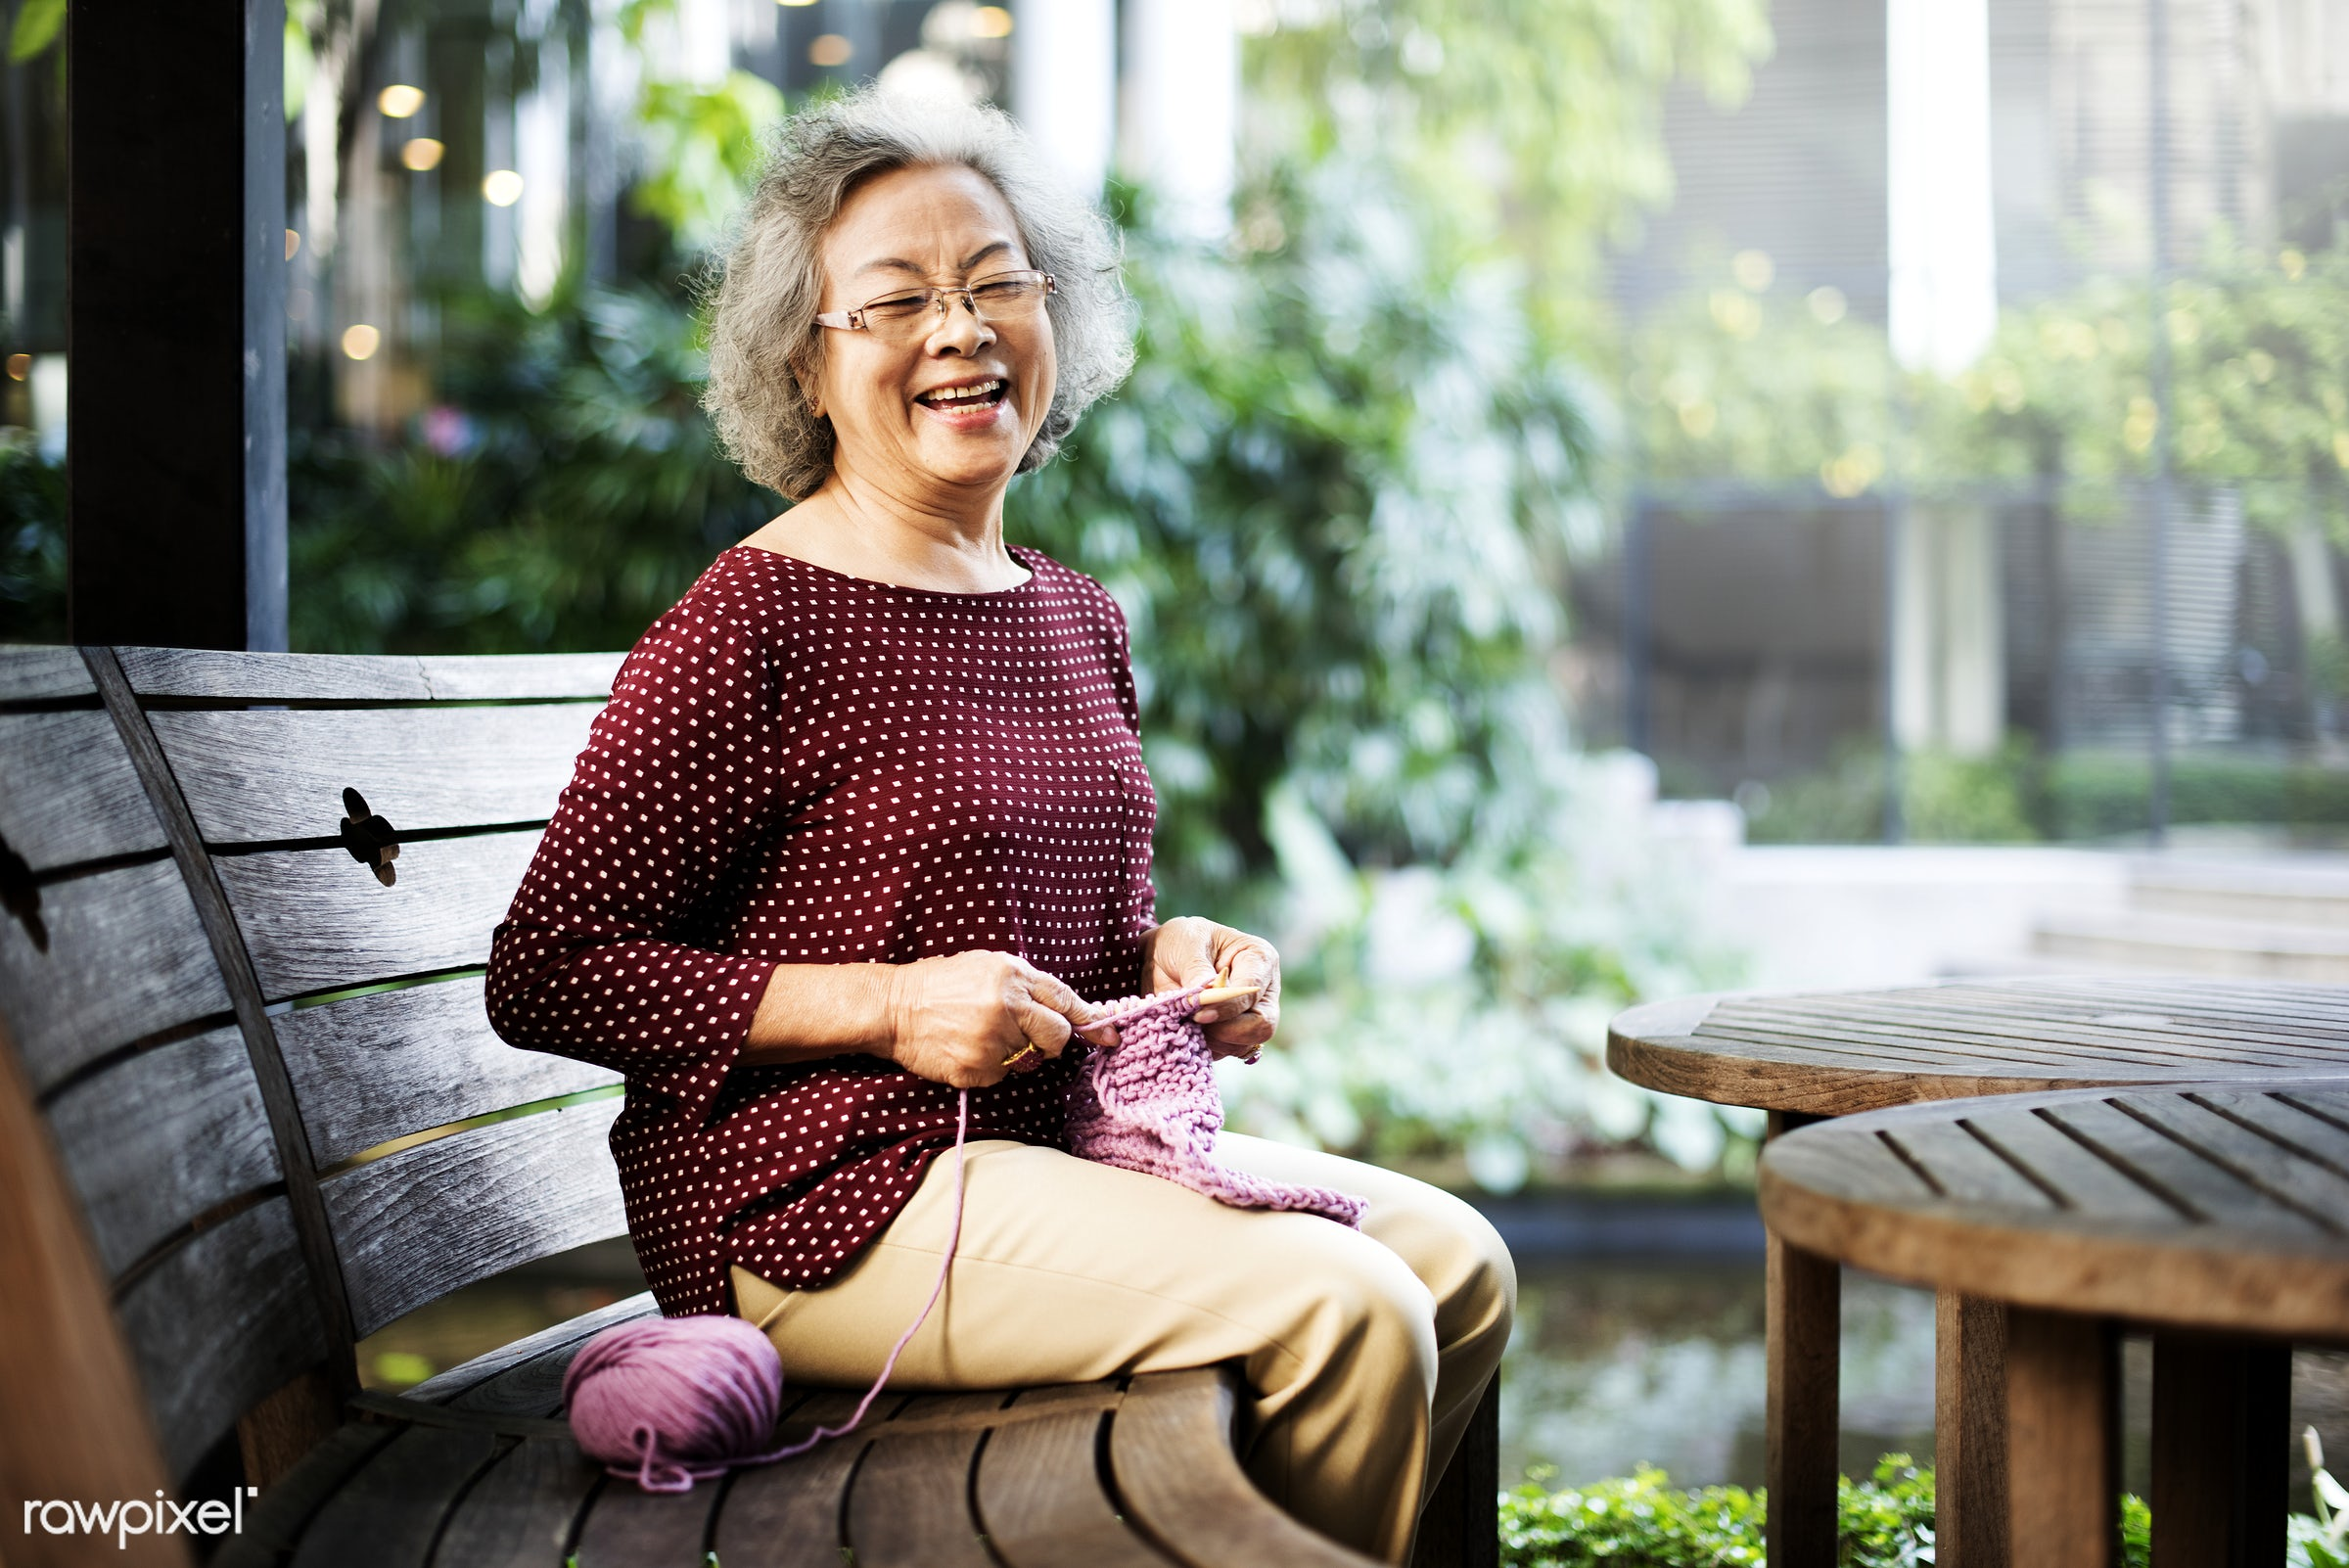 Life style of a senior Asian woman - activity, adult, cafe, casual, cheerful, close up, craft, day, female, handmade, happy...